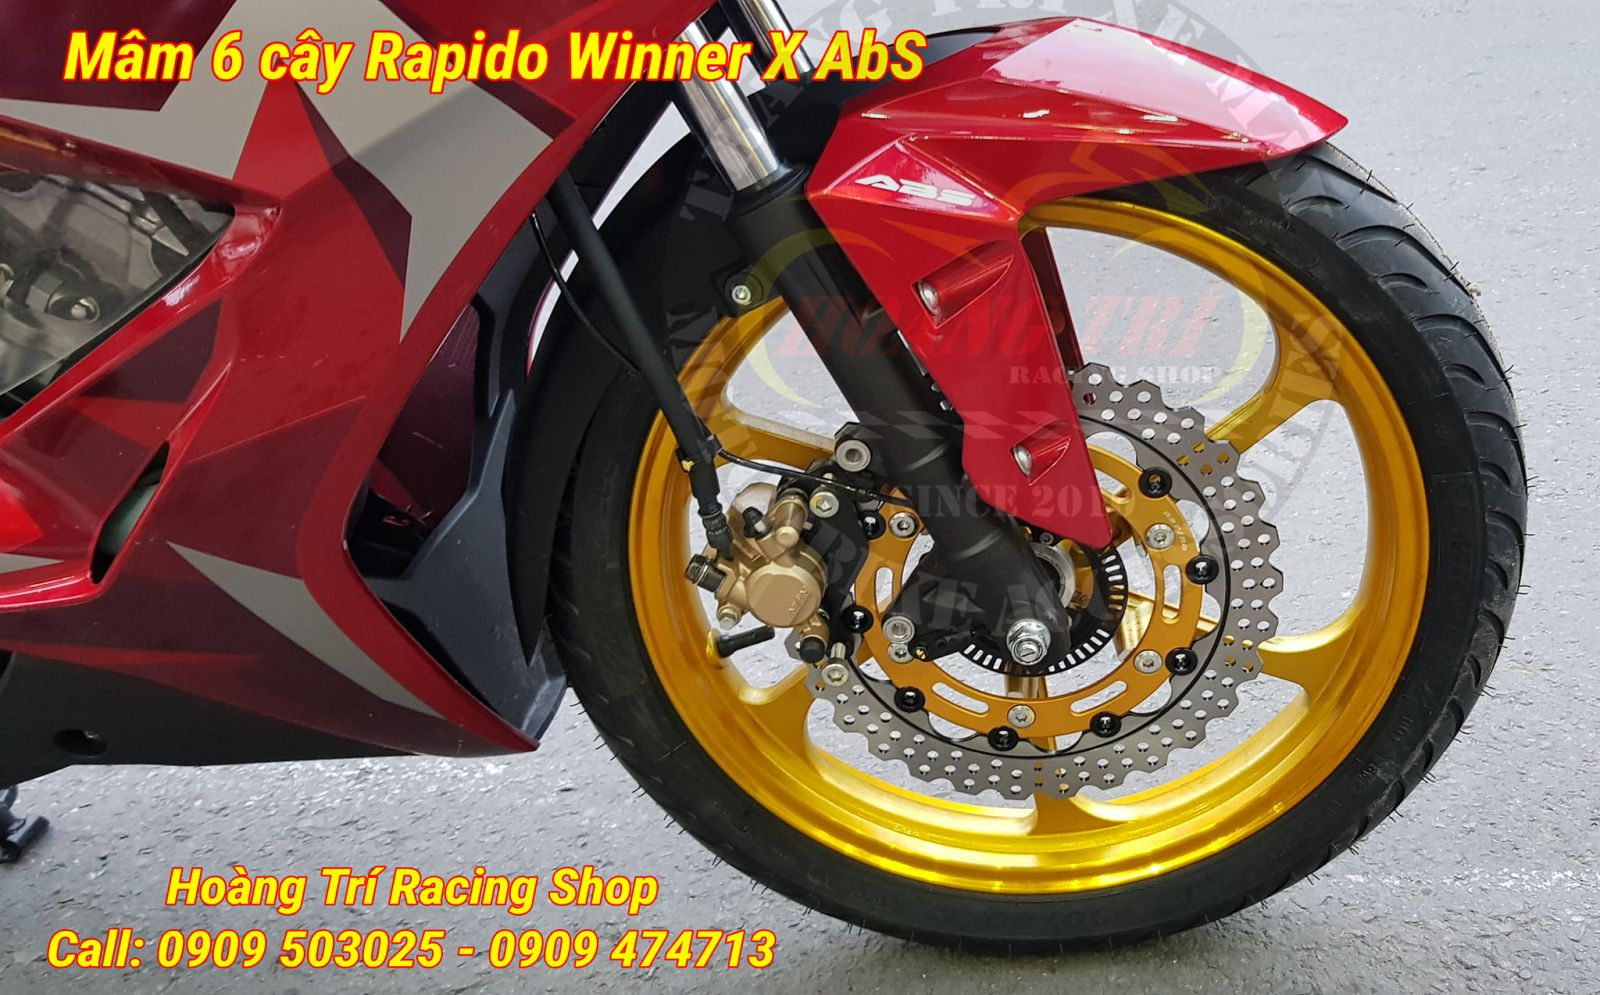 6-tree Rapido wheels fitted as standard for Winner X ABS version